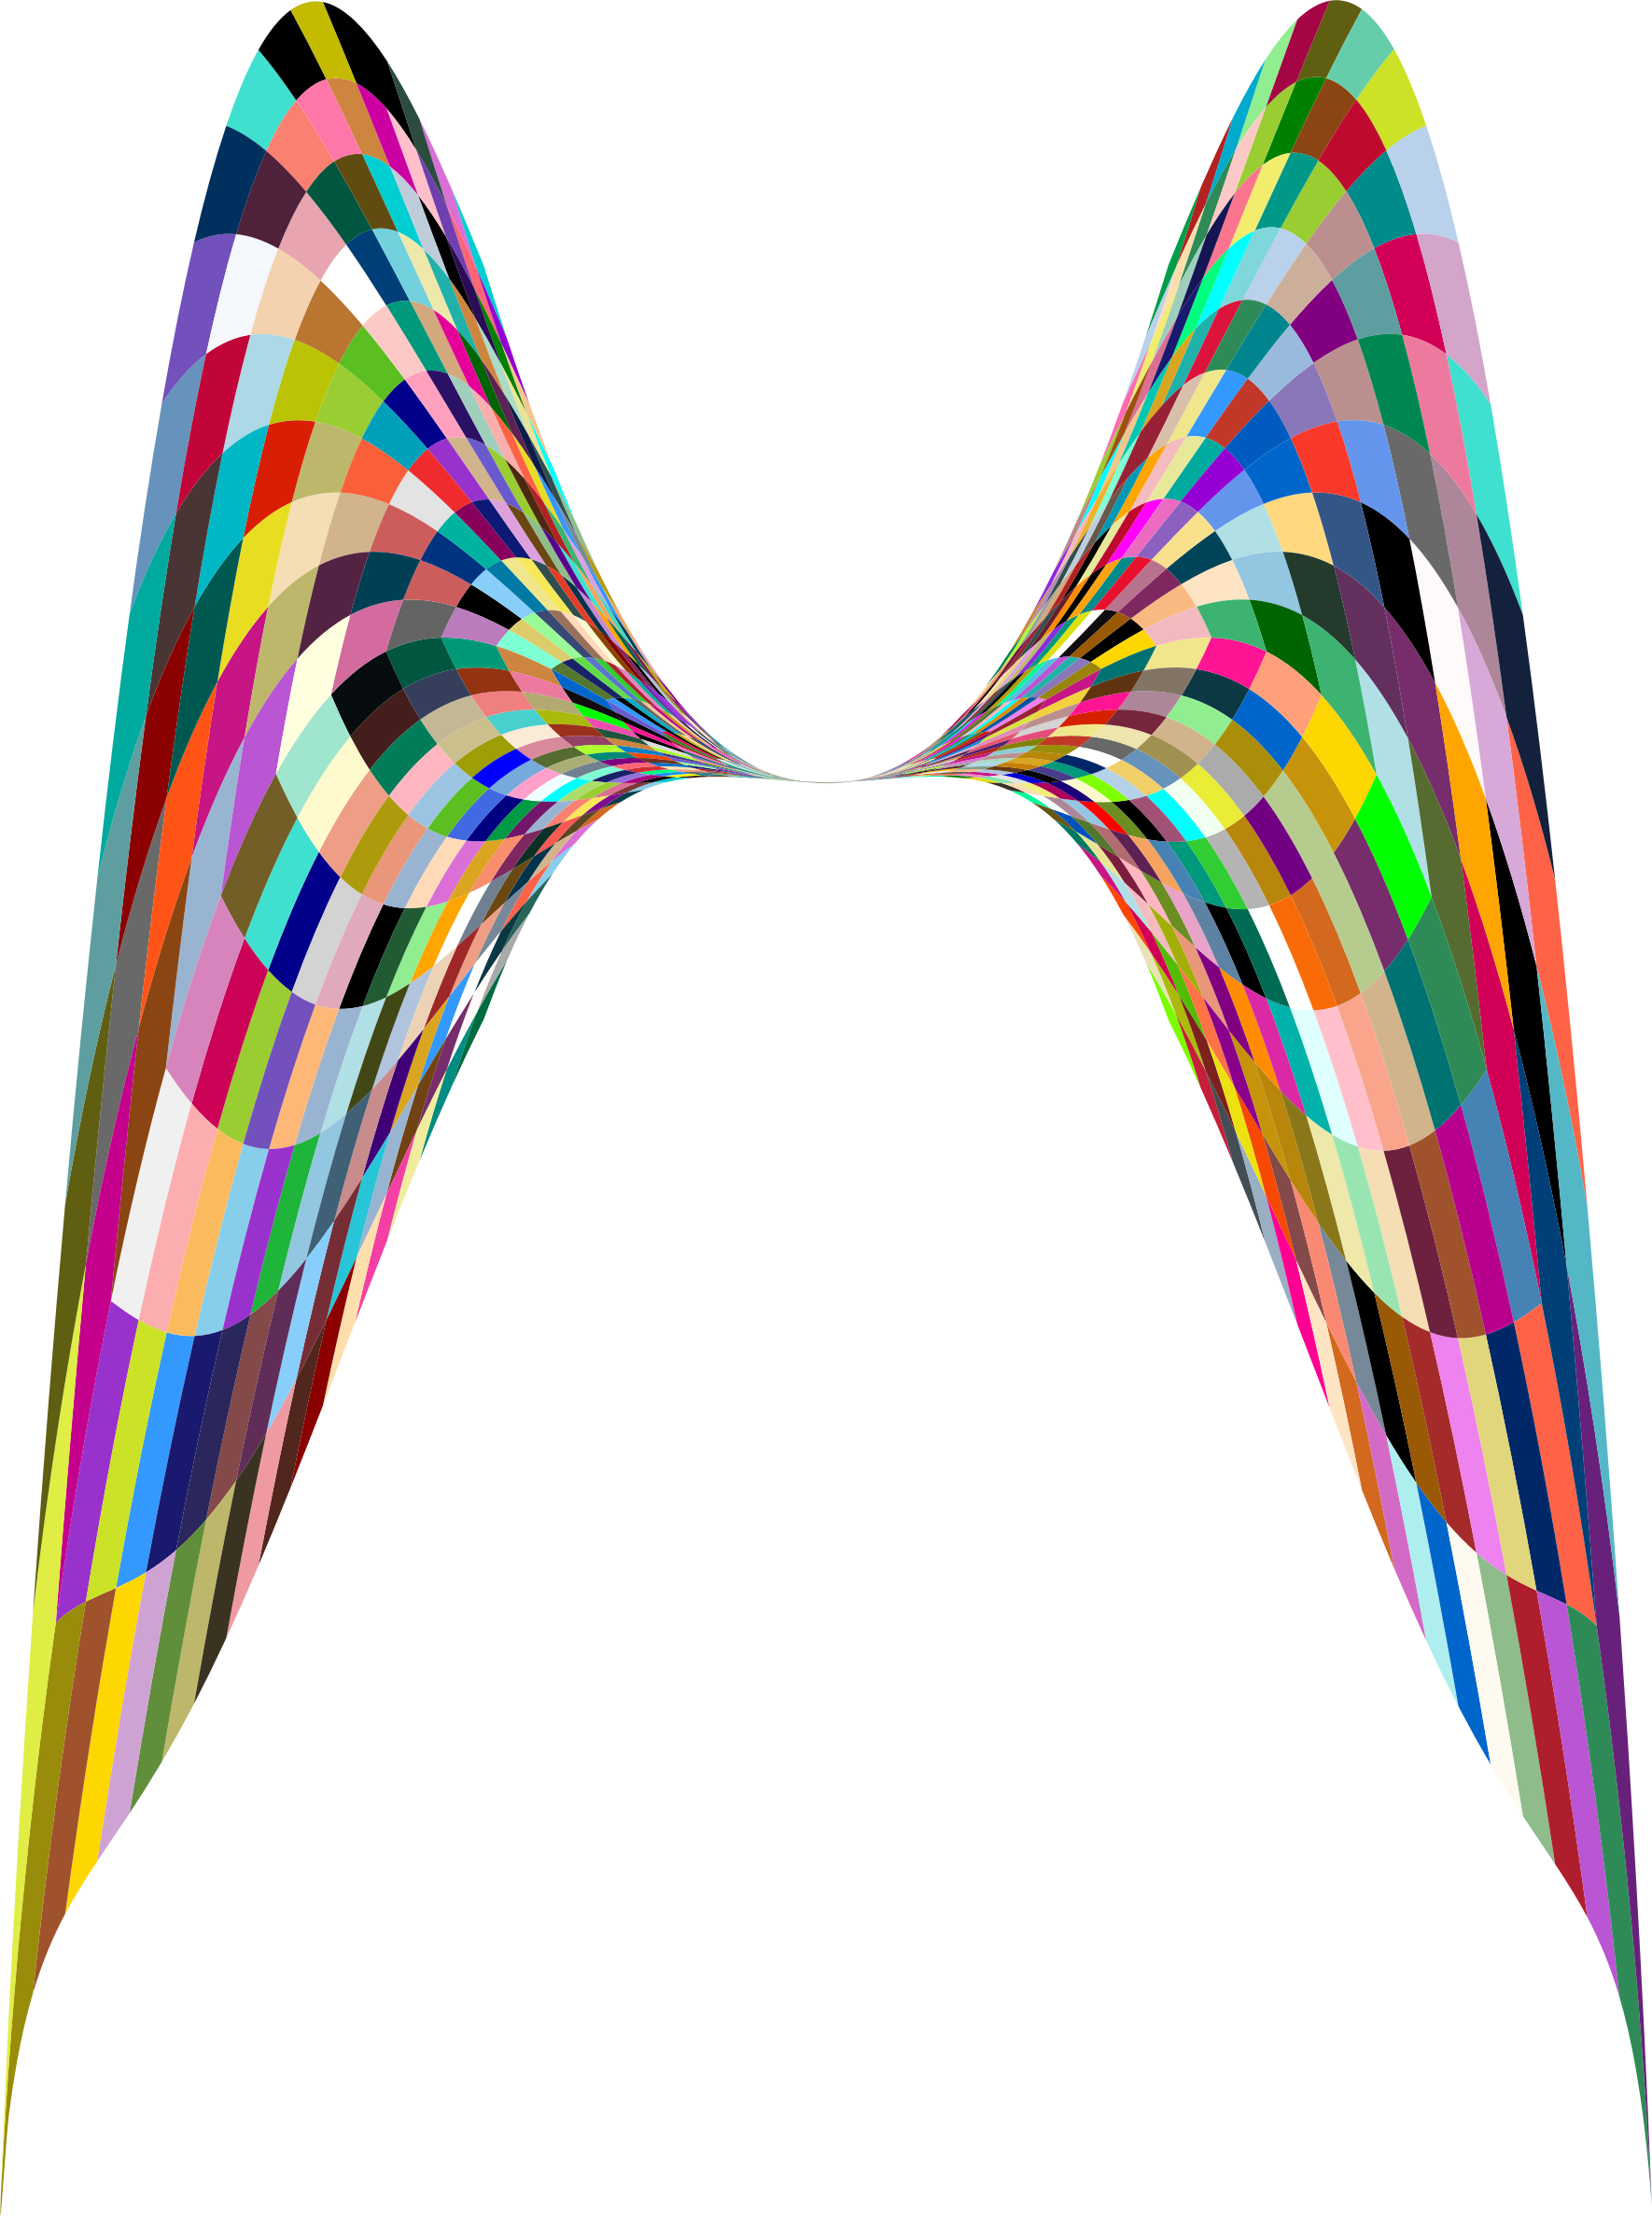 Colorful Geometric Angel Wings by GDJ